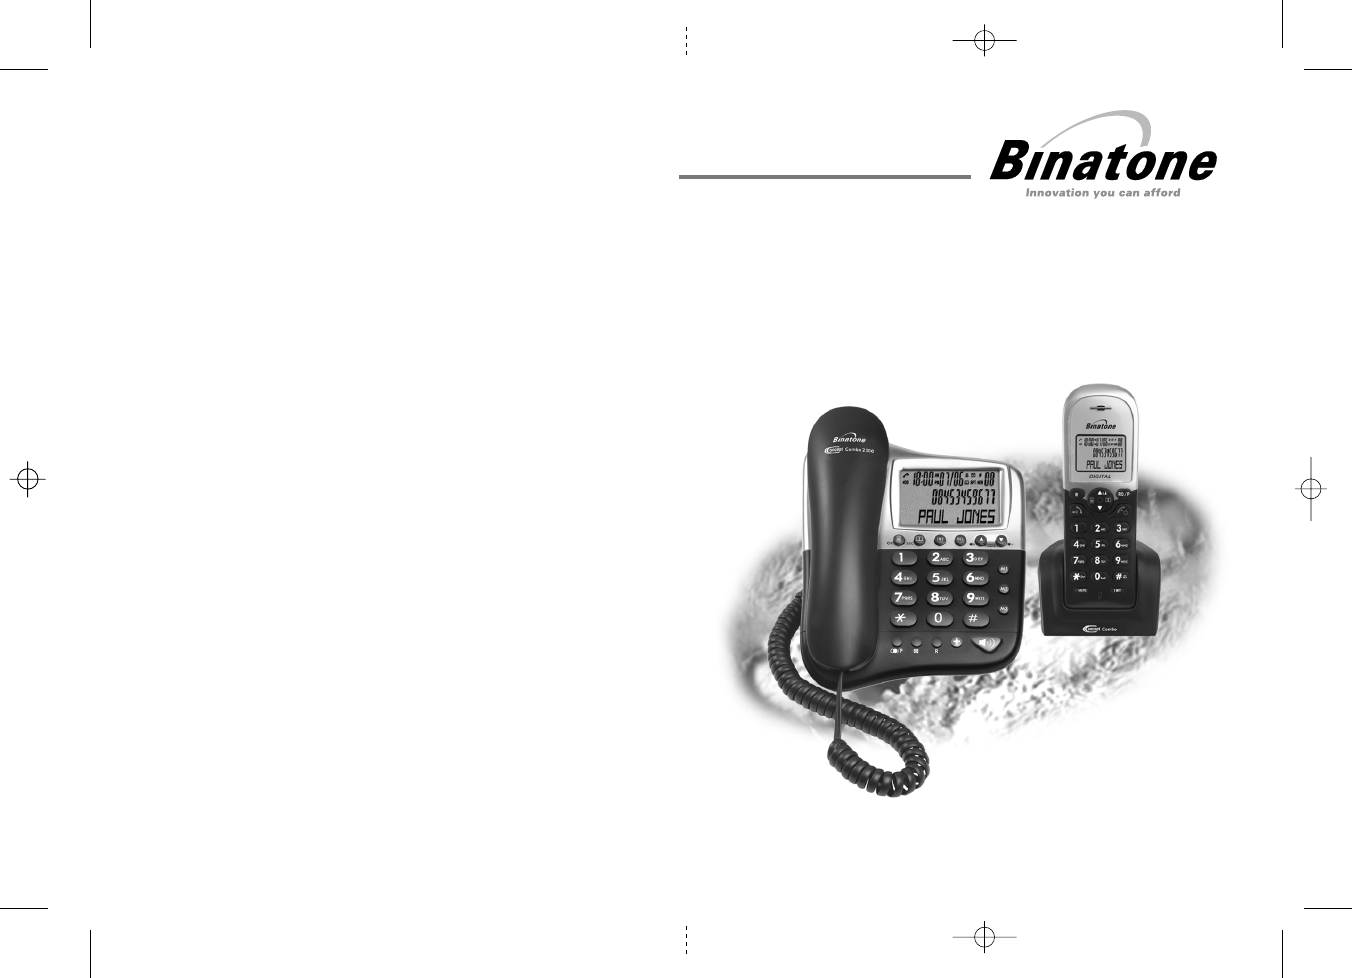 Binatone Cordless Telephone User Guide